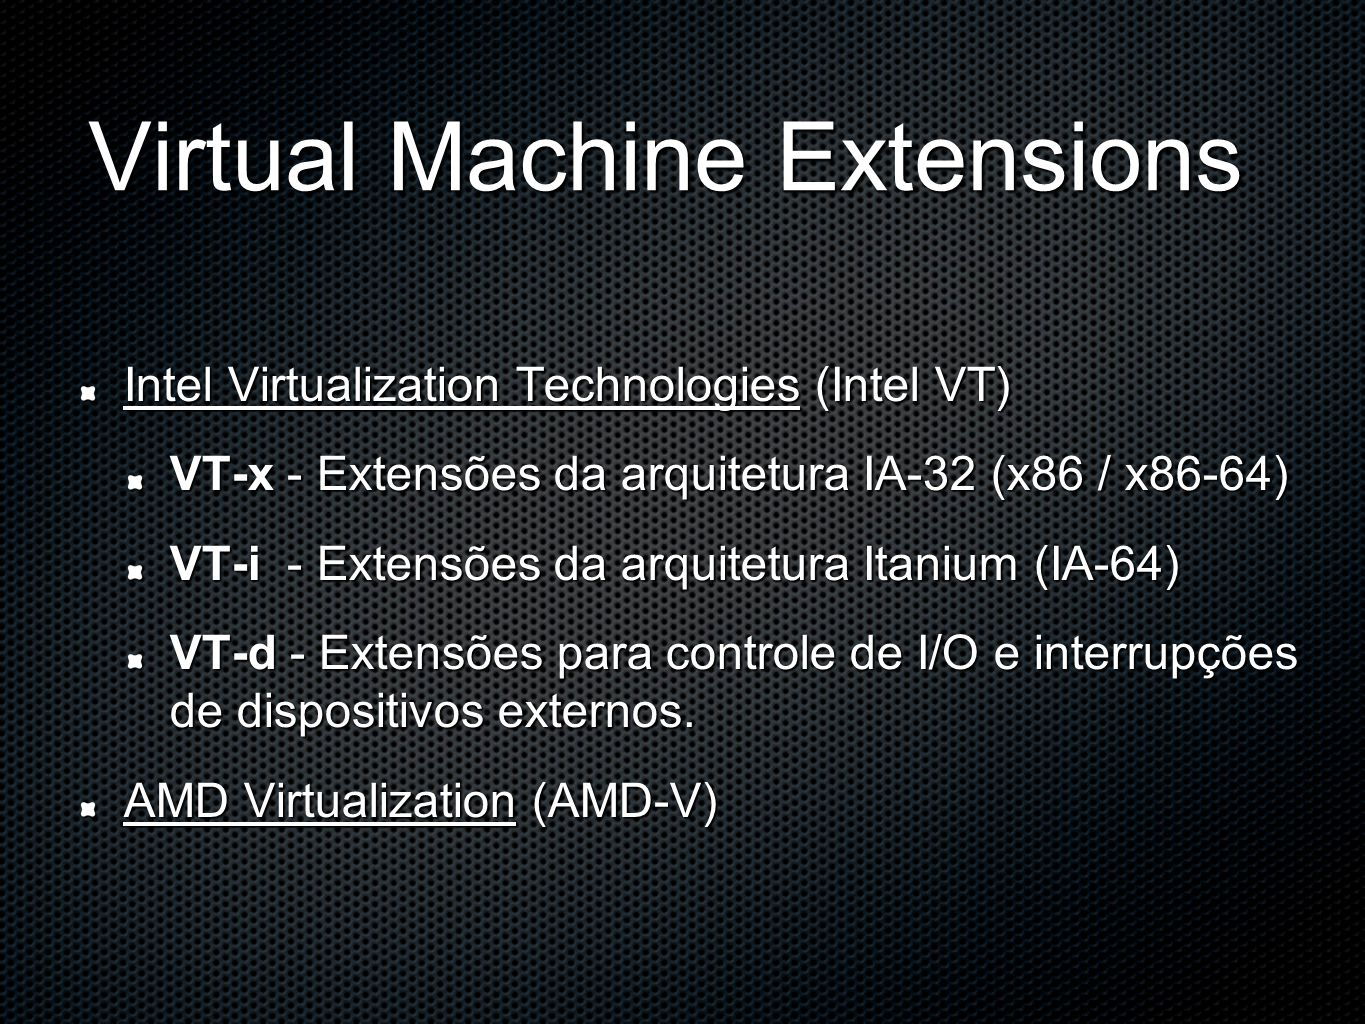 Virtual Machine Extensions